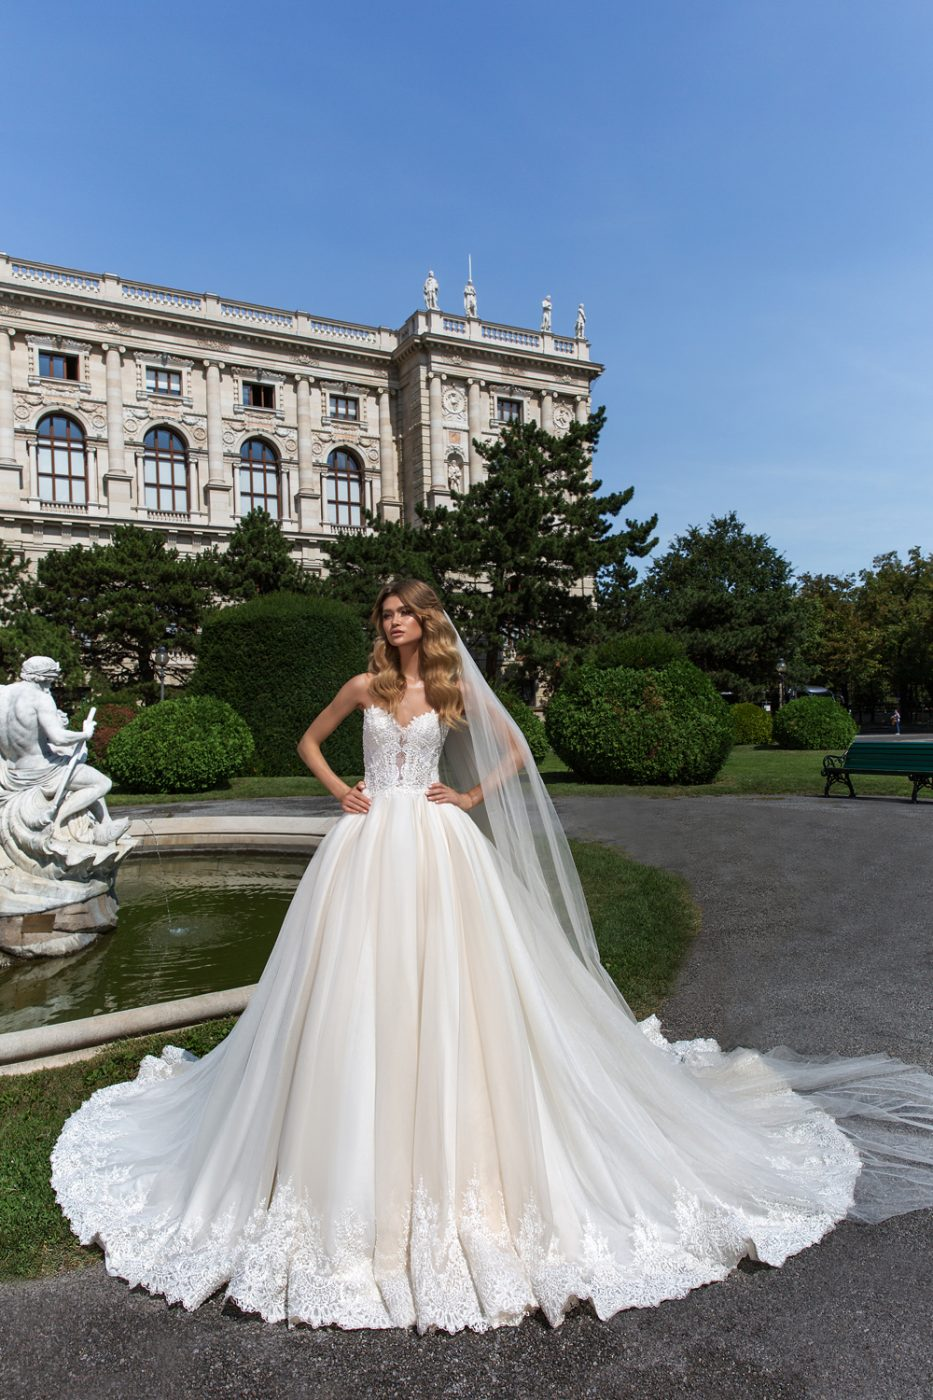 strapless statement ballgown by Crystal Design Couture